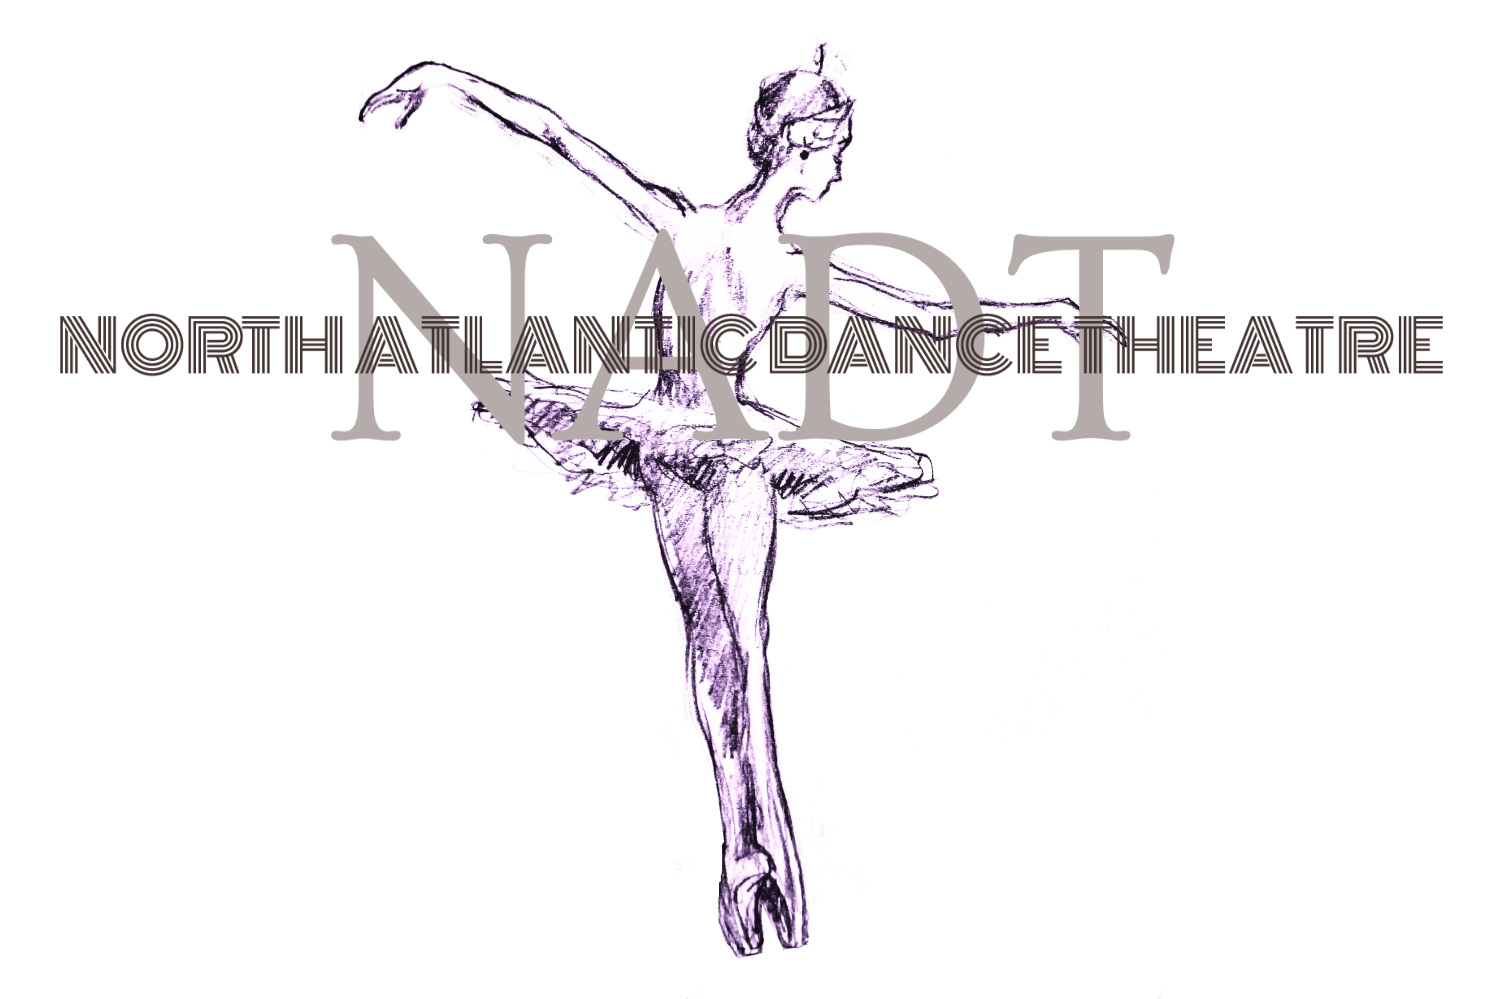 North Atlantic Dance Theatre